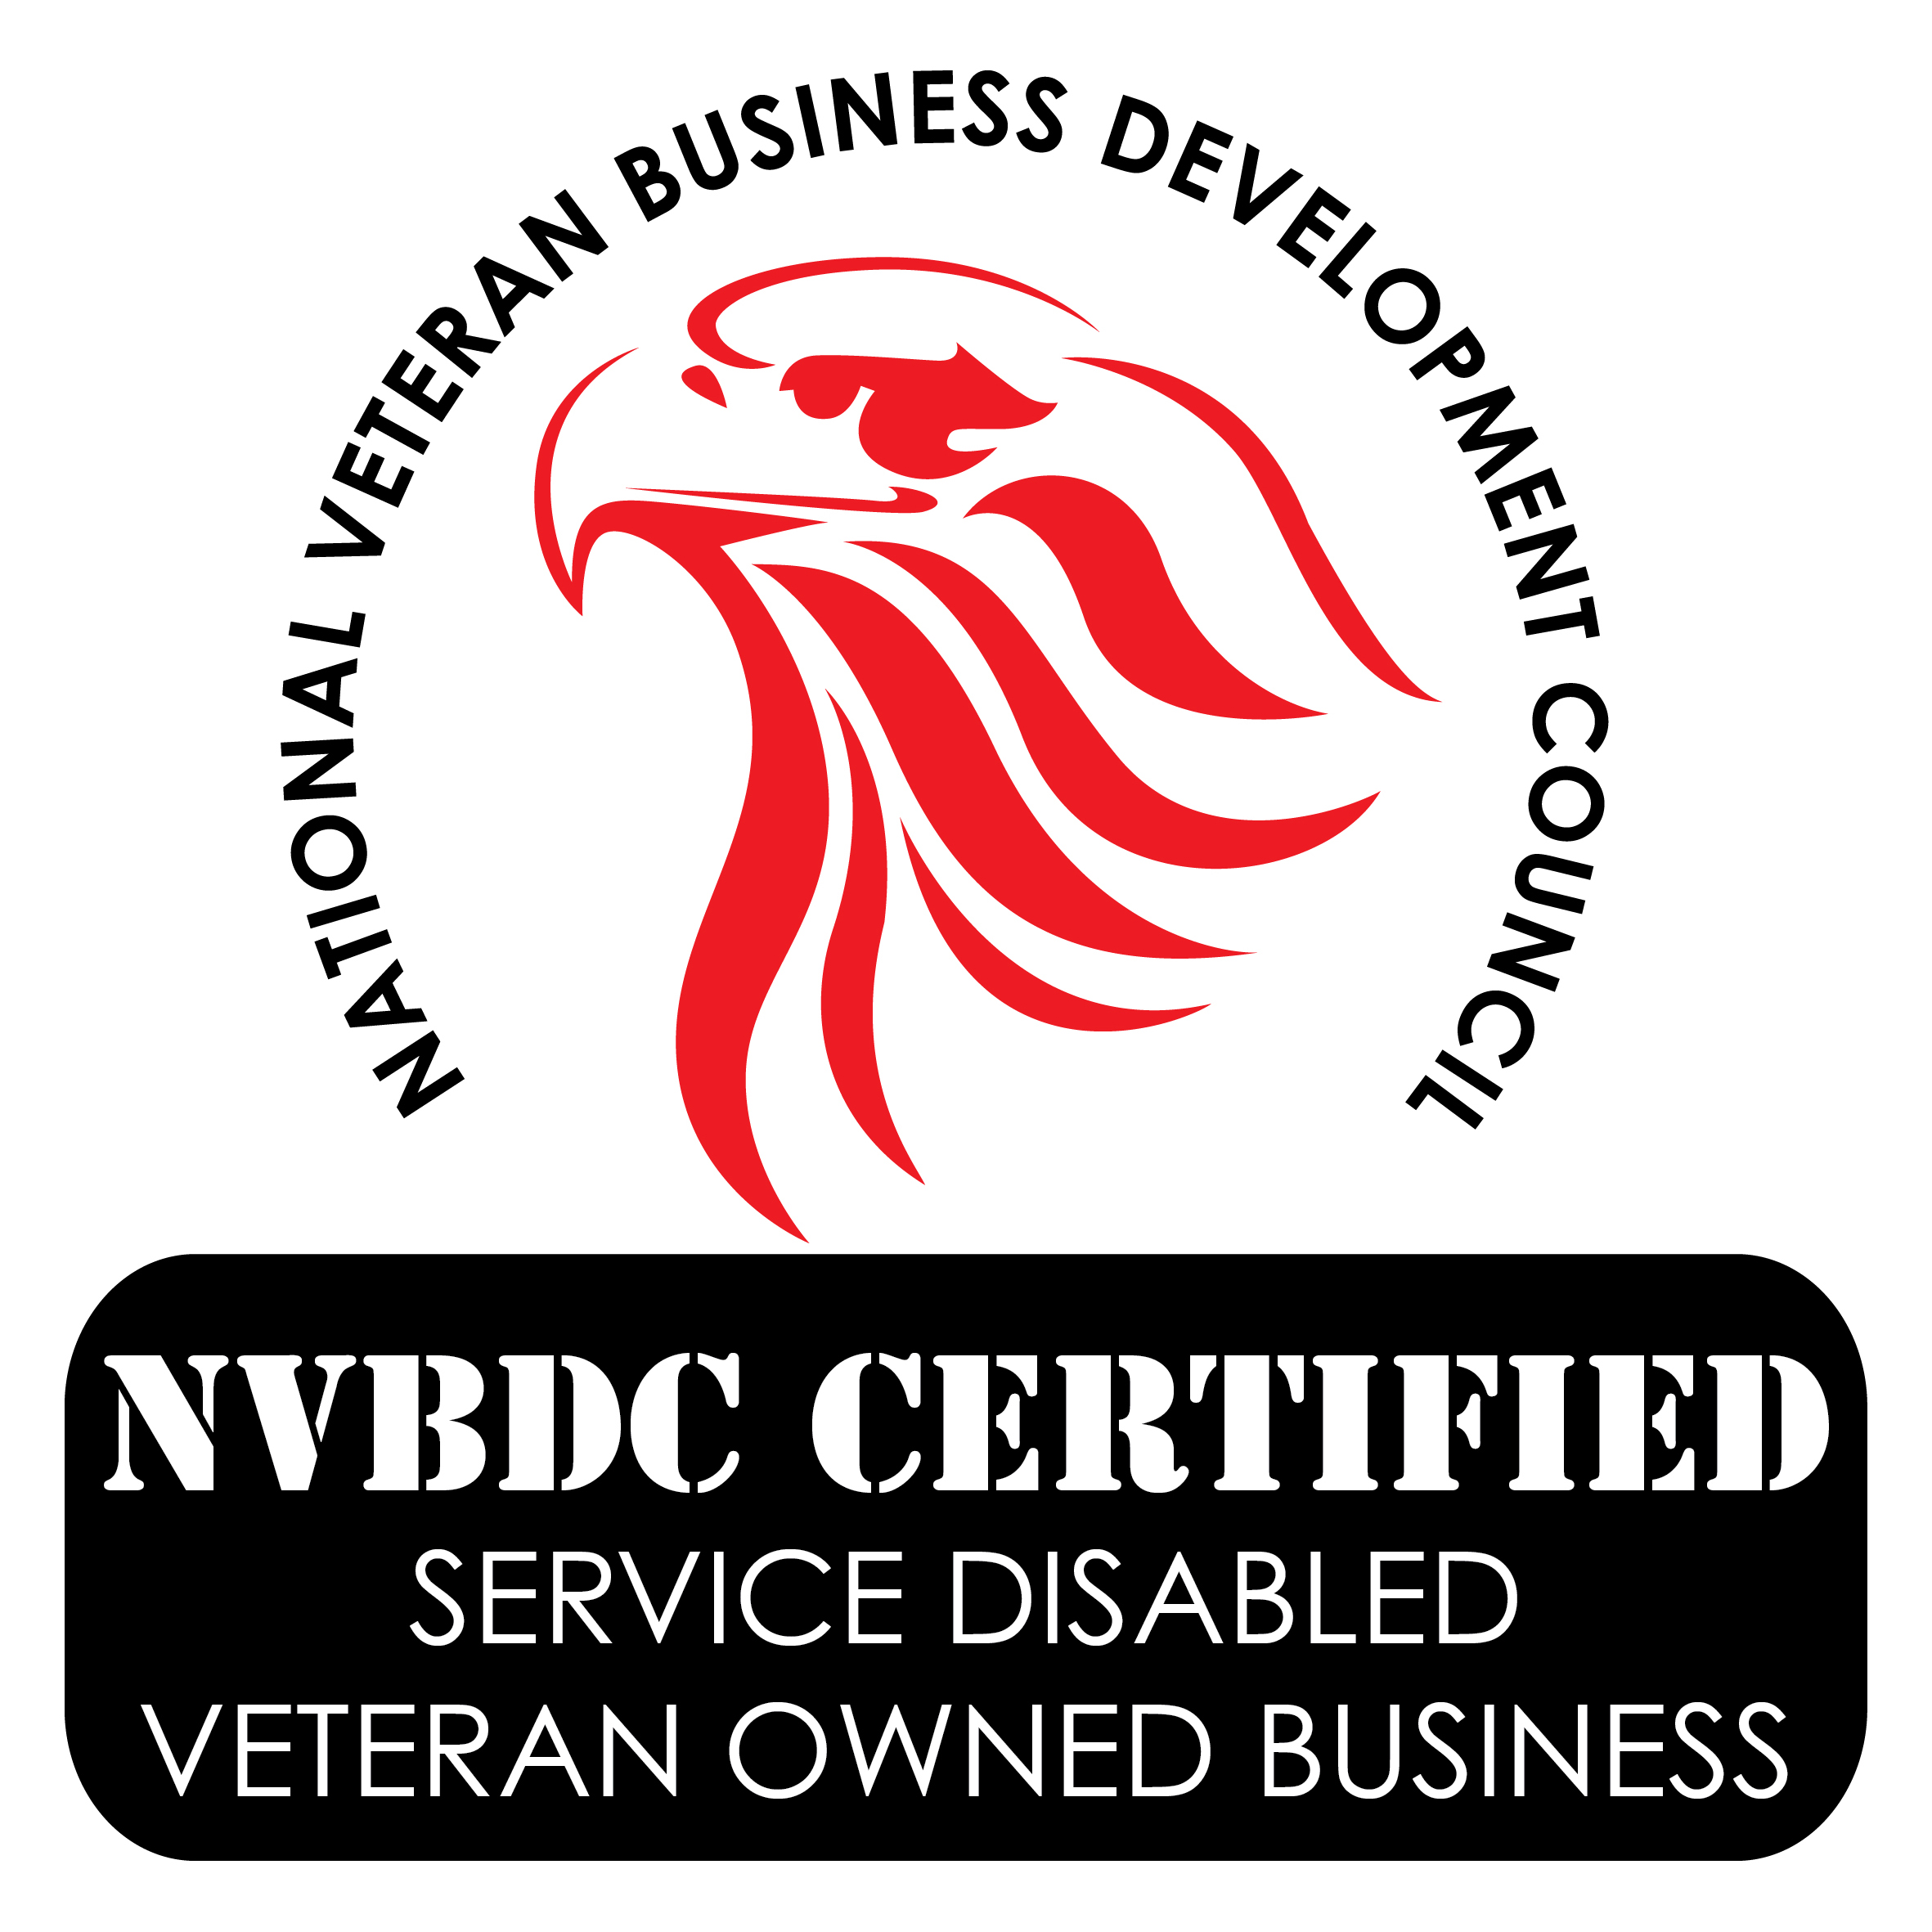 Express yourself promotional products serving asheville proud members of the north carolina veterans business association the asheville downtown business associationfleet reserve association and disabled reheart Choice Image